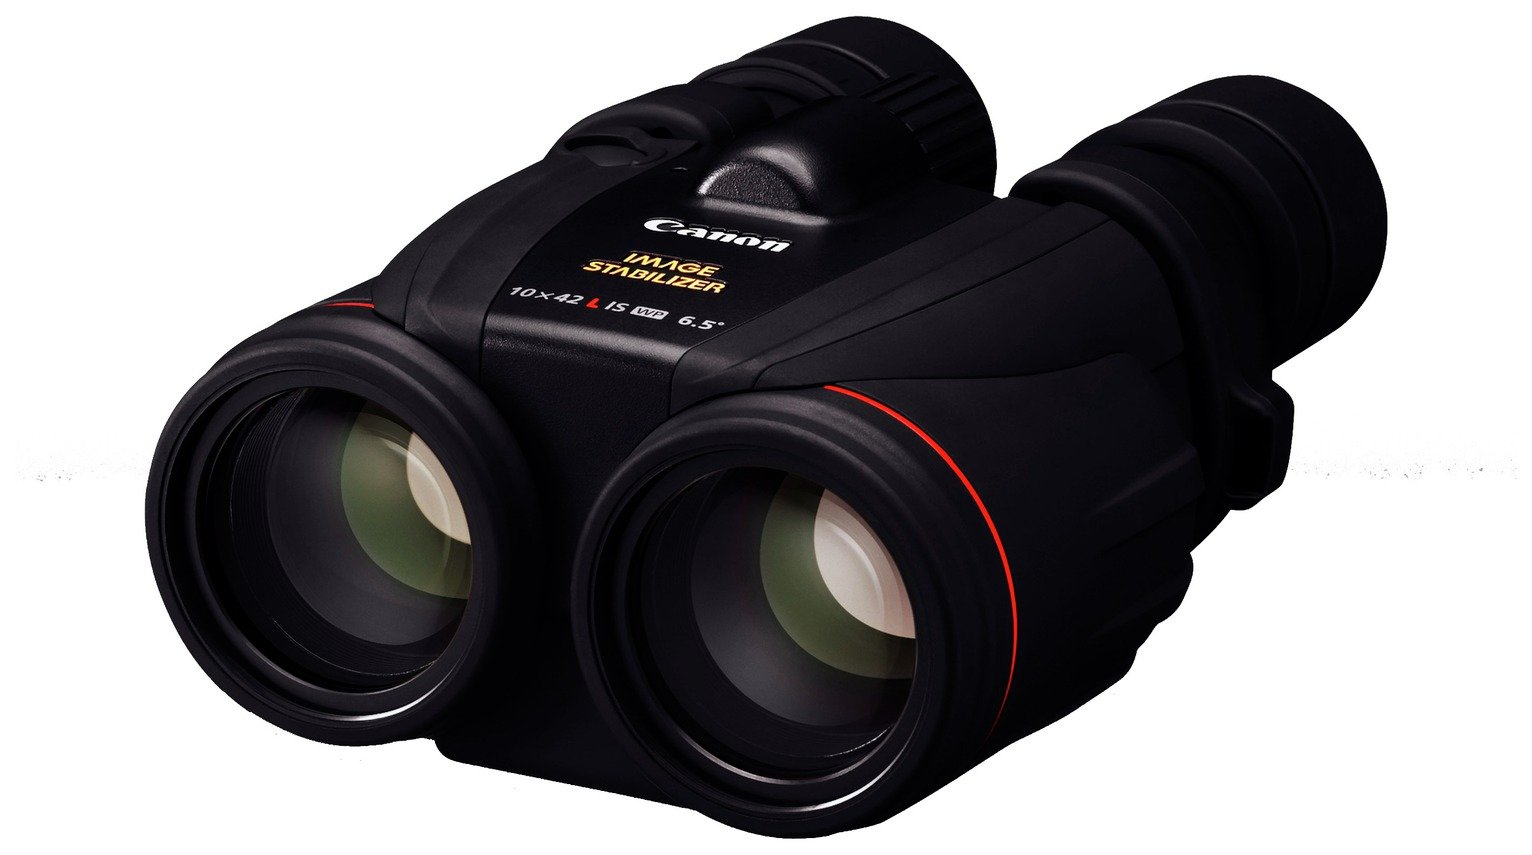 Canon 10 x 42L IS WP Binoculars review